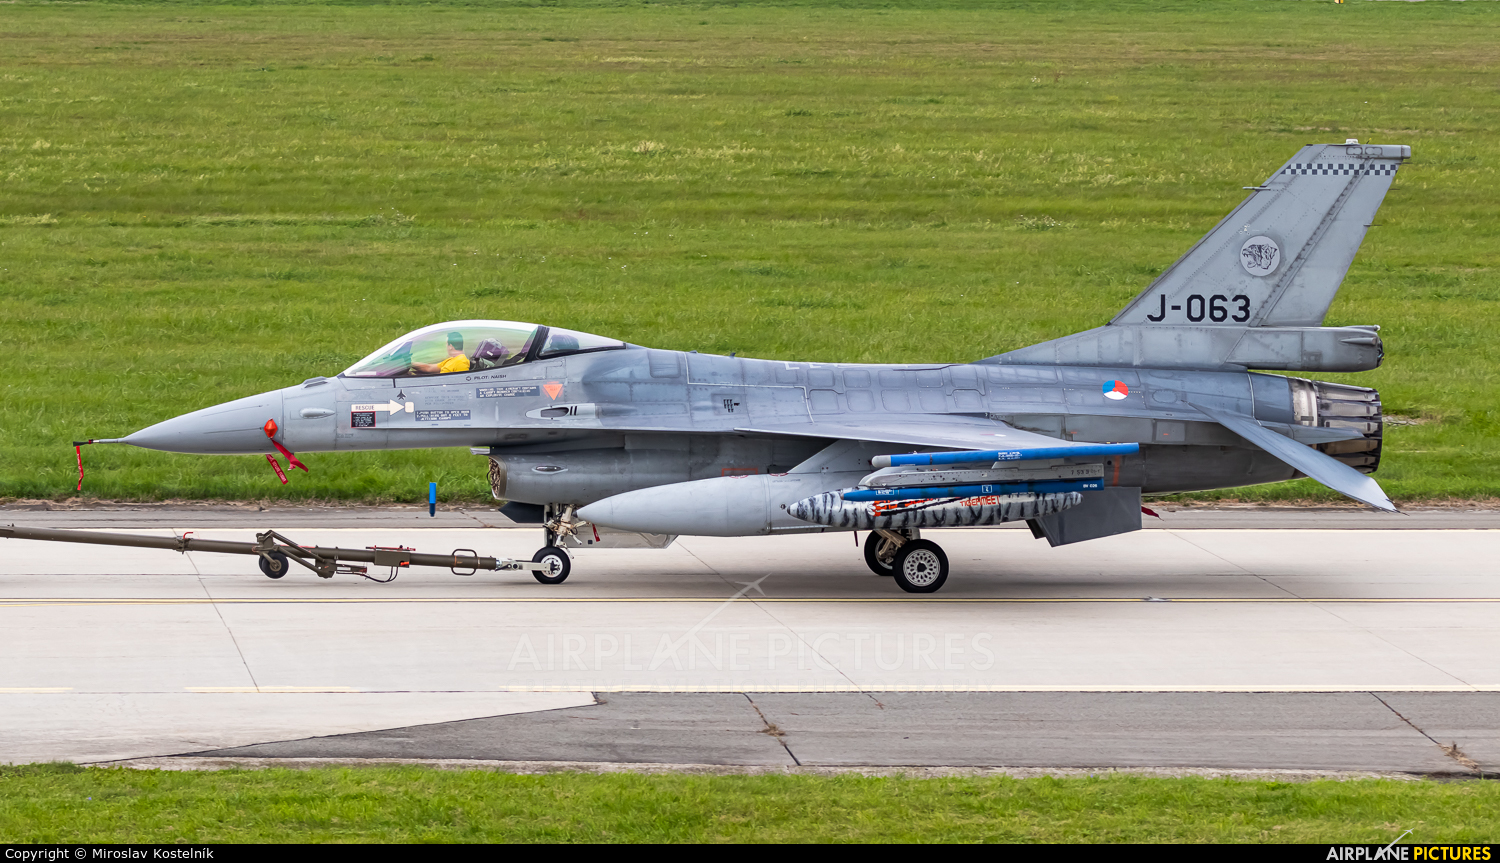 Netherlands - Air Force J-063 aircraft at Ostrava Mošnov